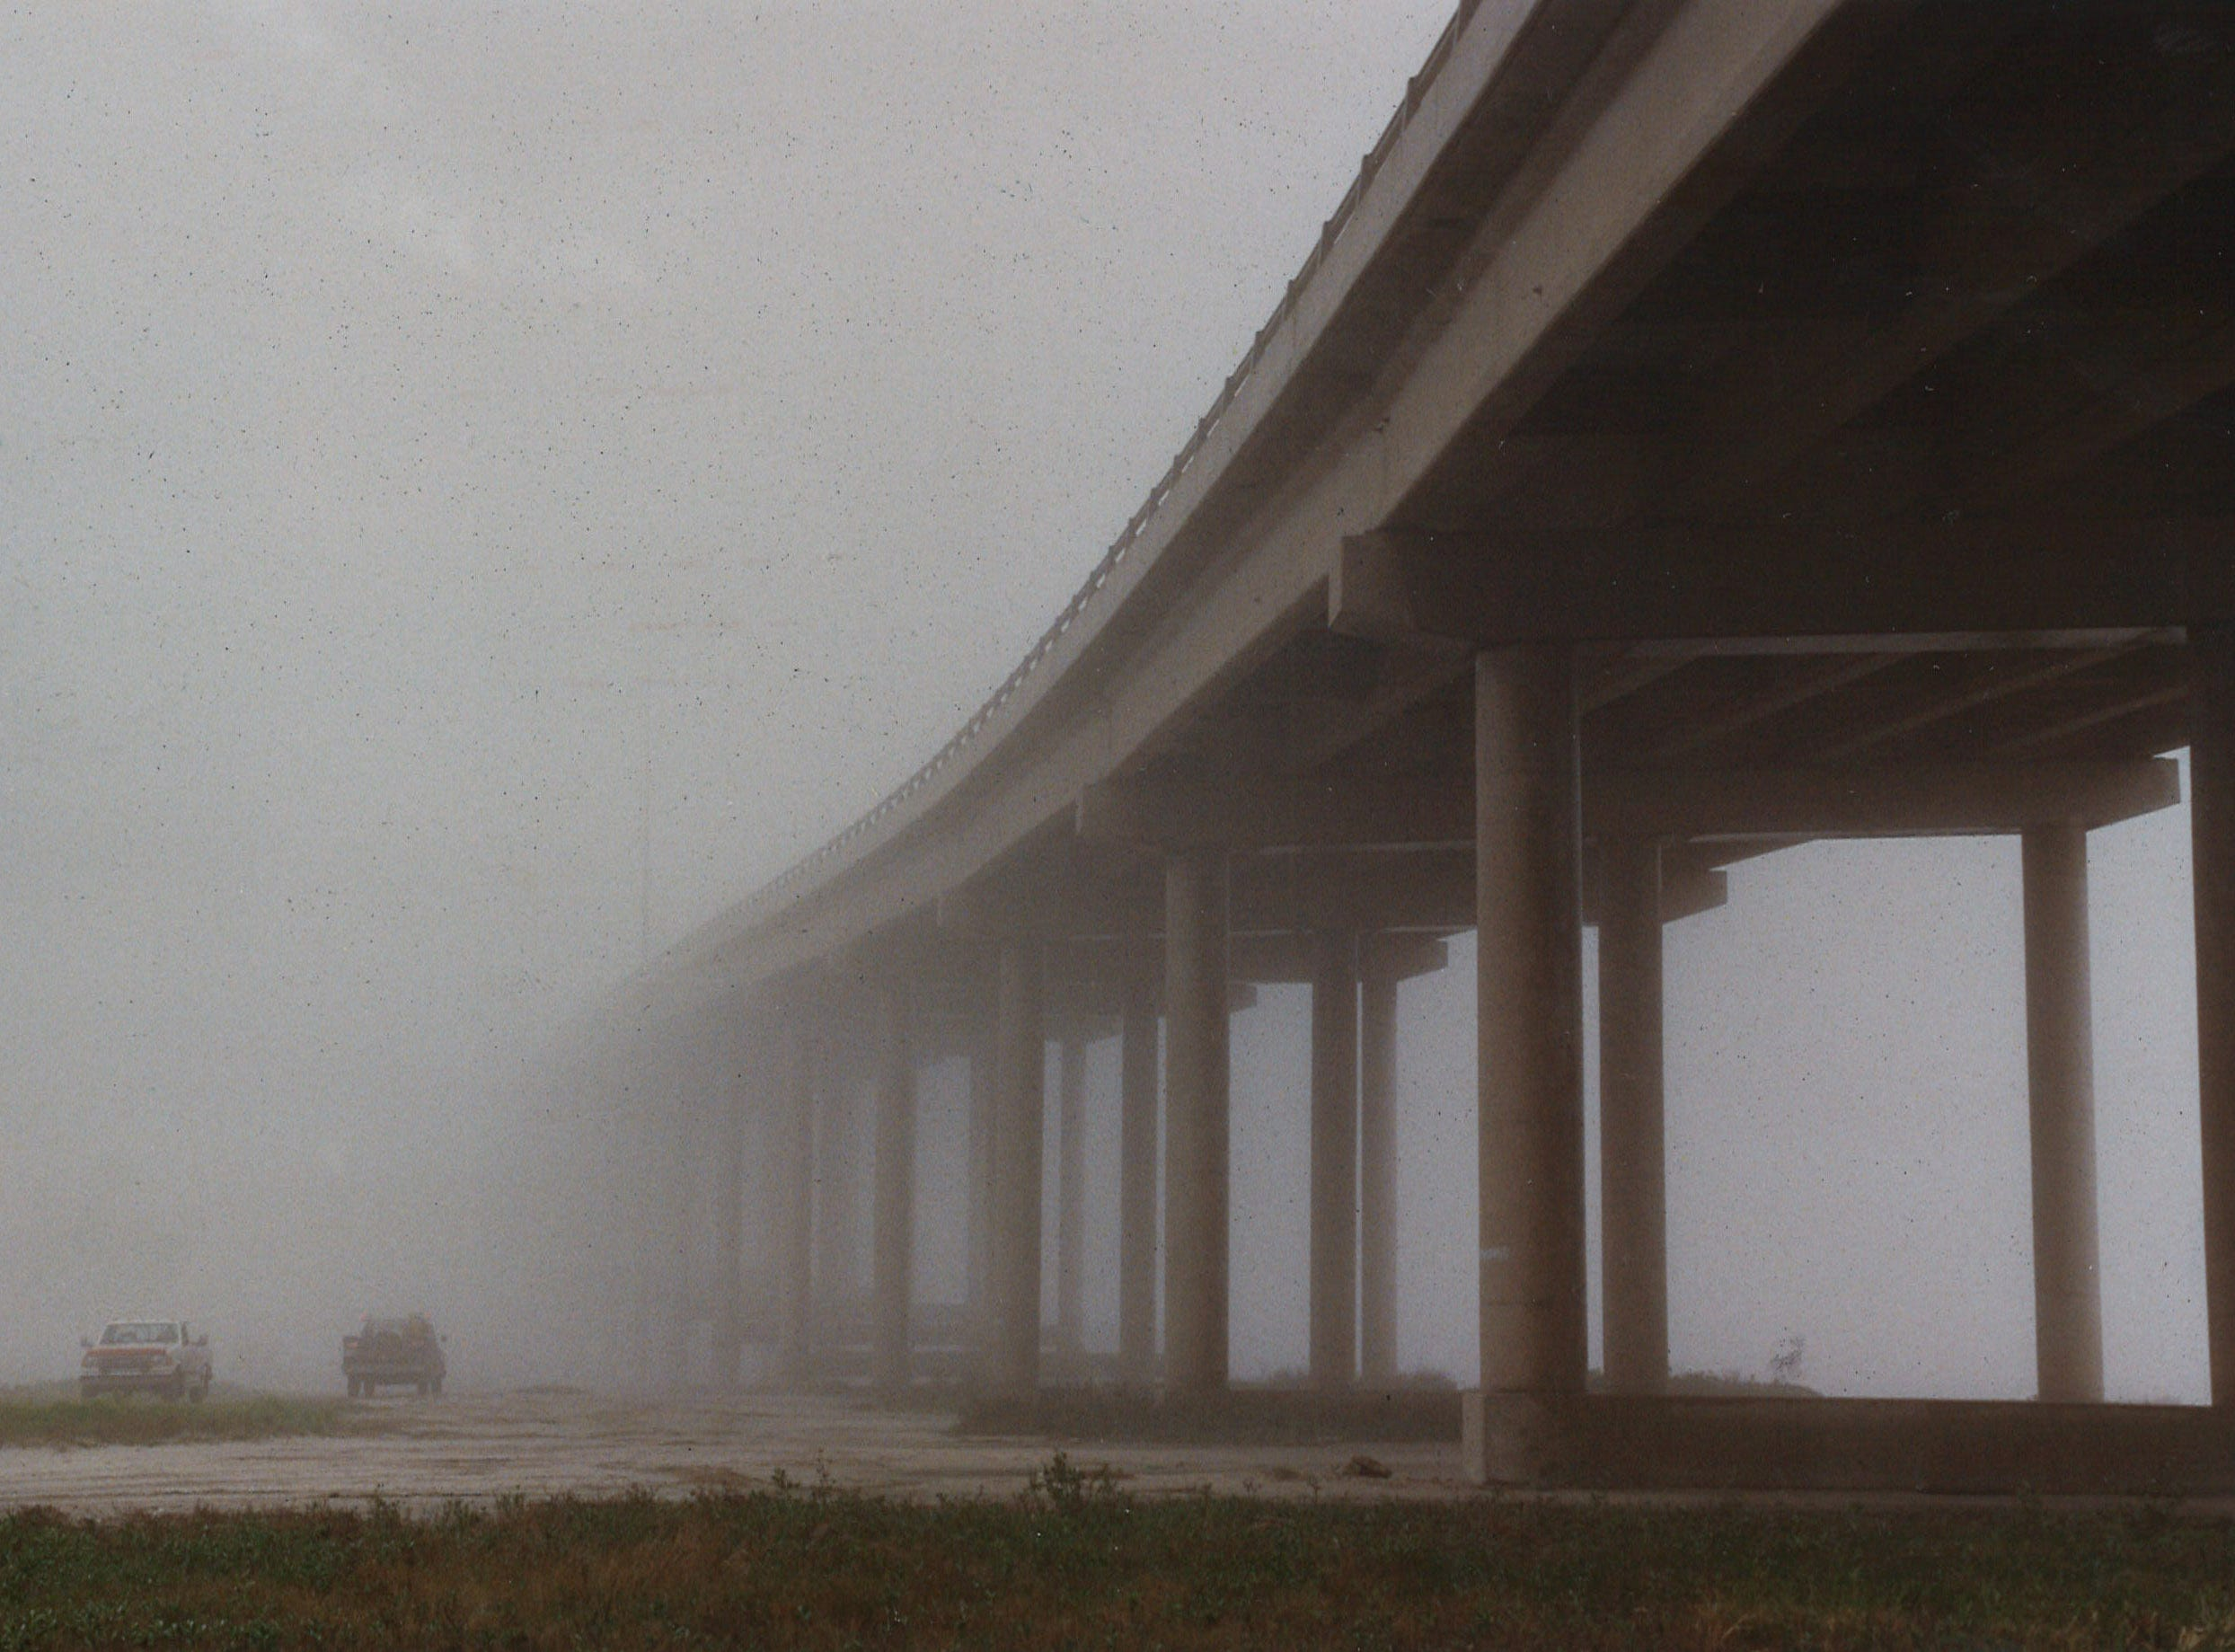 The John F. Kennedy Memorial Causeway in Corpus Christi disappears into the fog on Jan. 3, 1993.